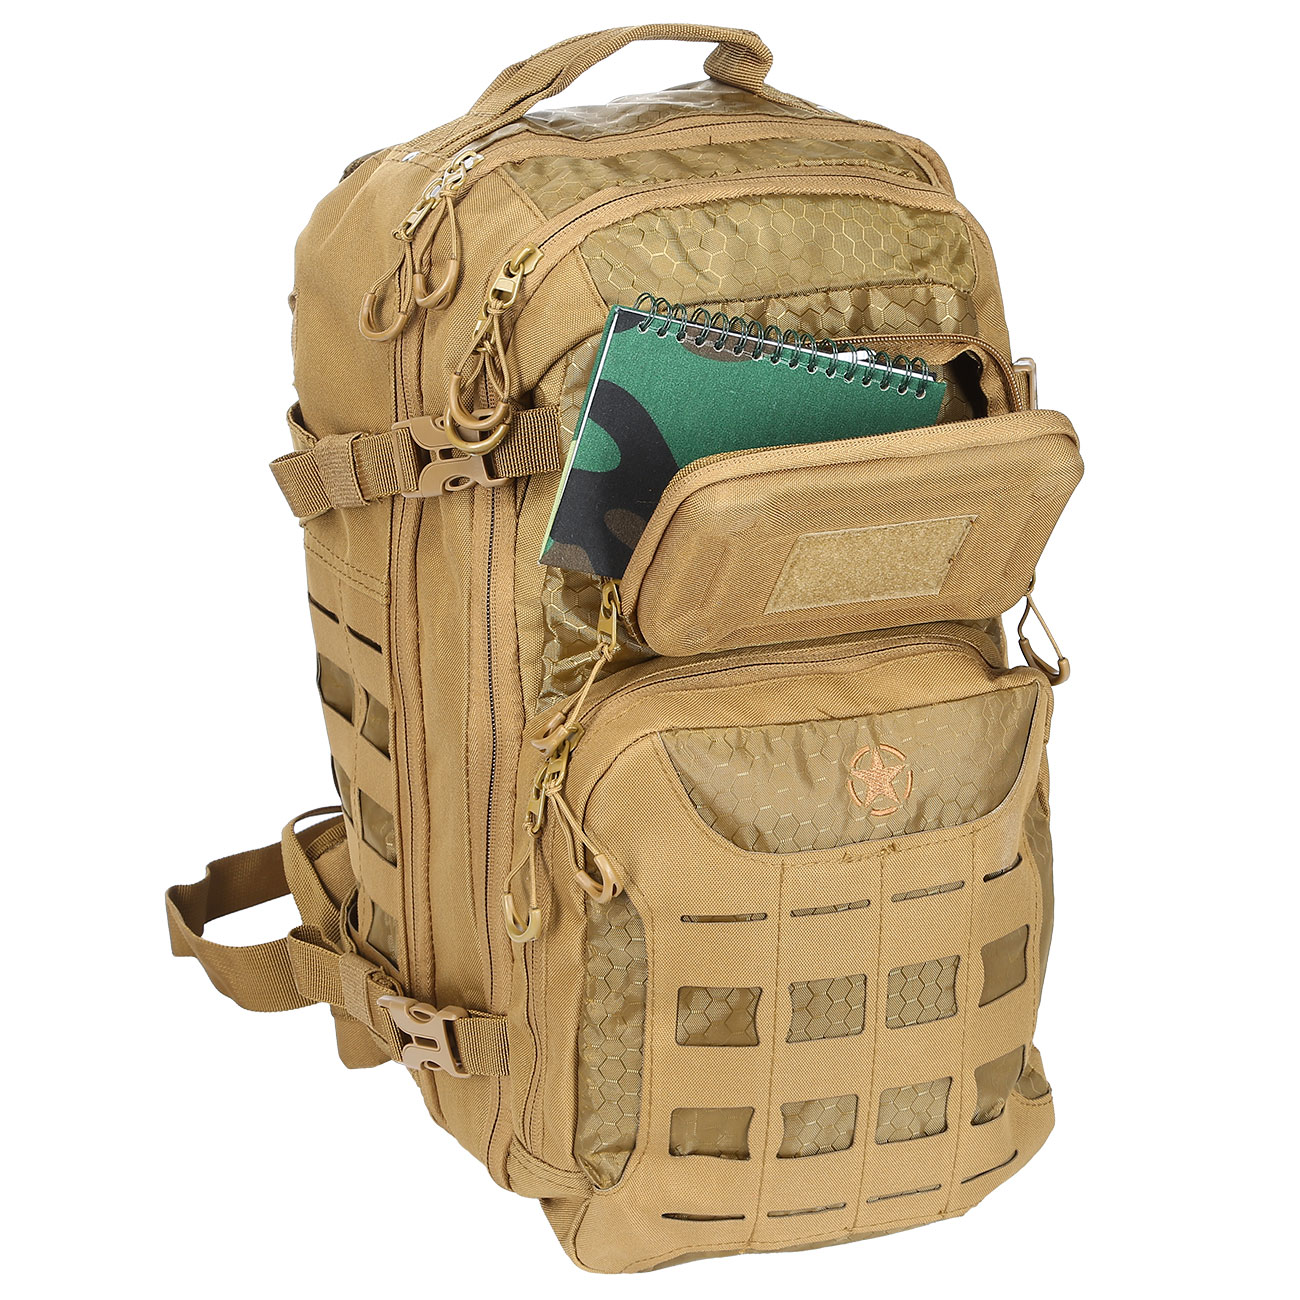 MFH Rucksack Operation I 30 Liter coyote 8